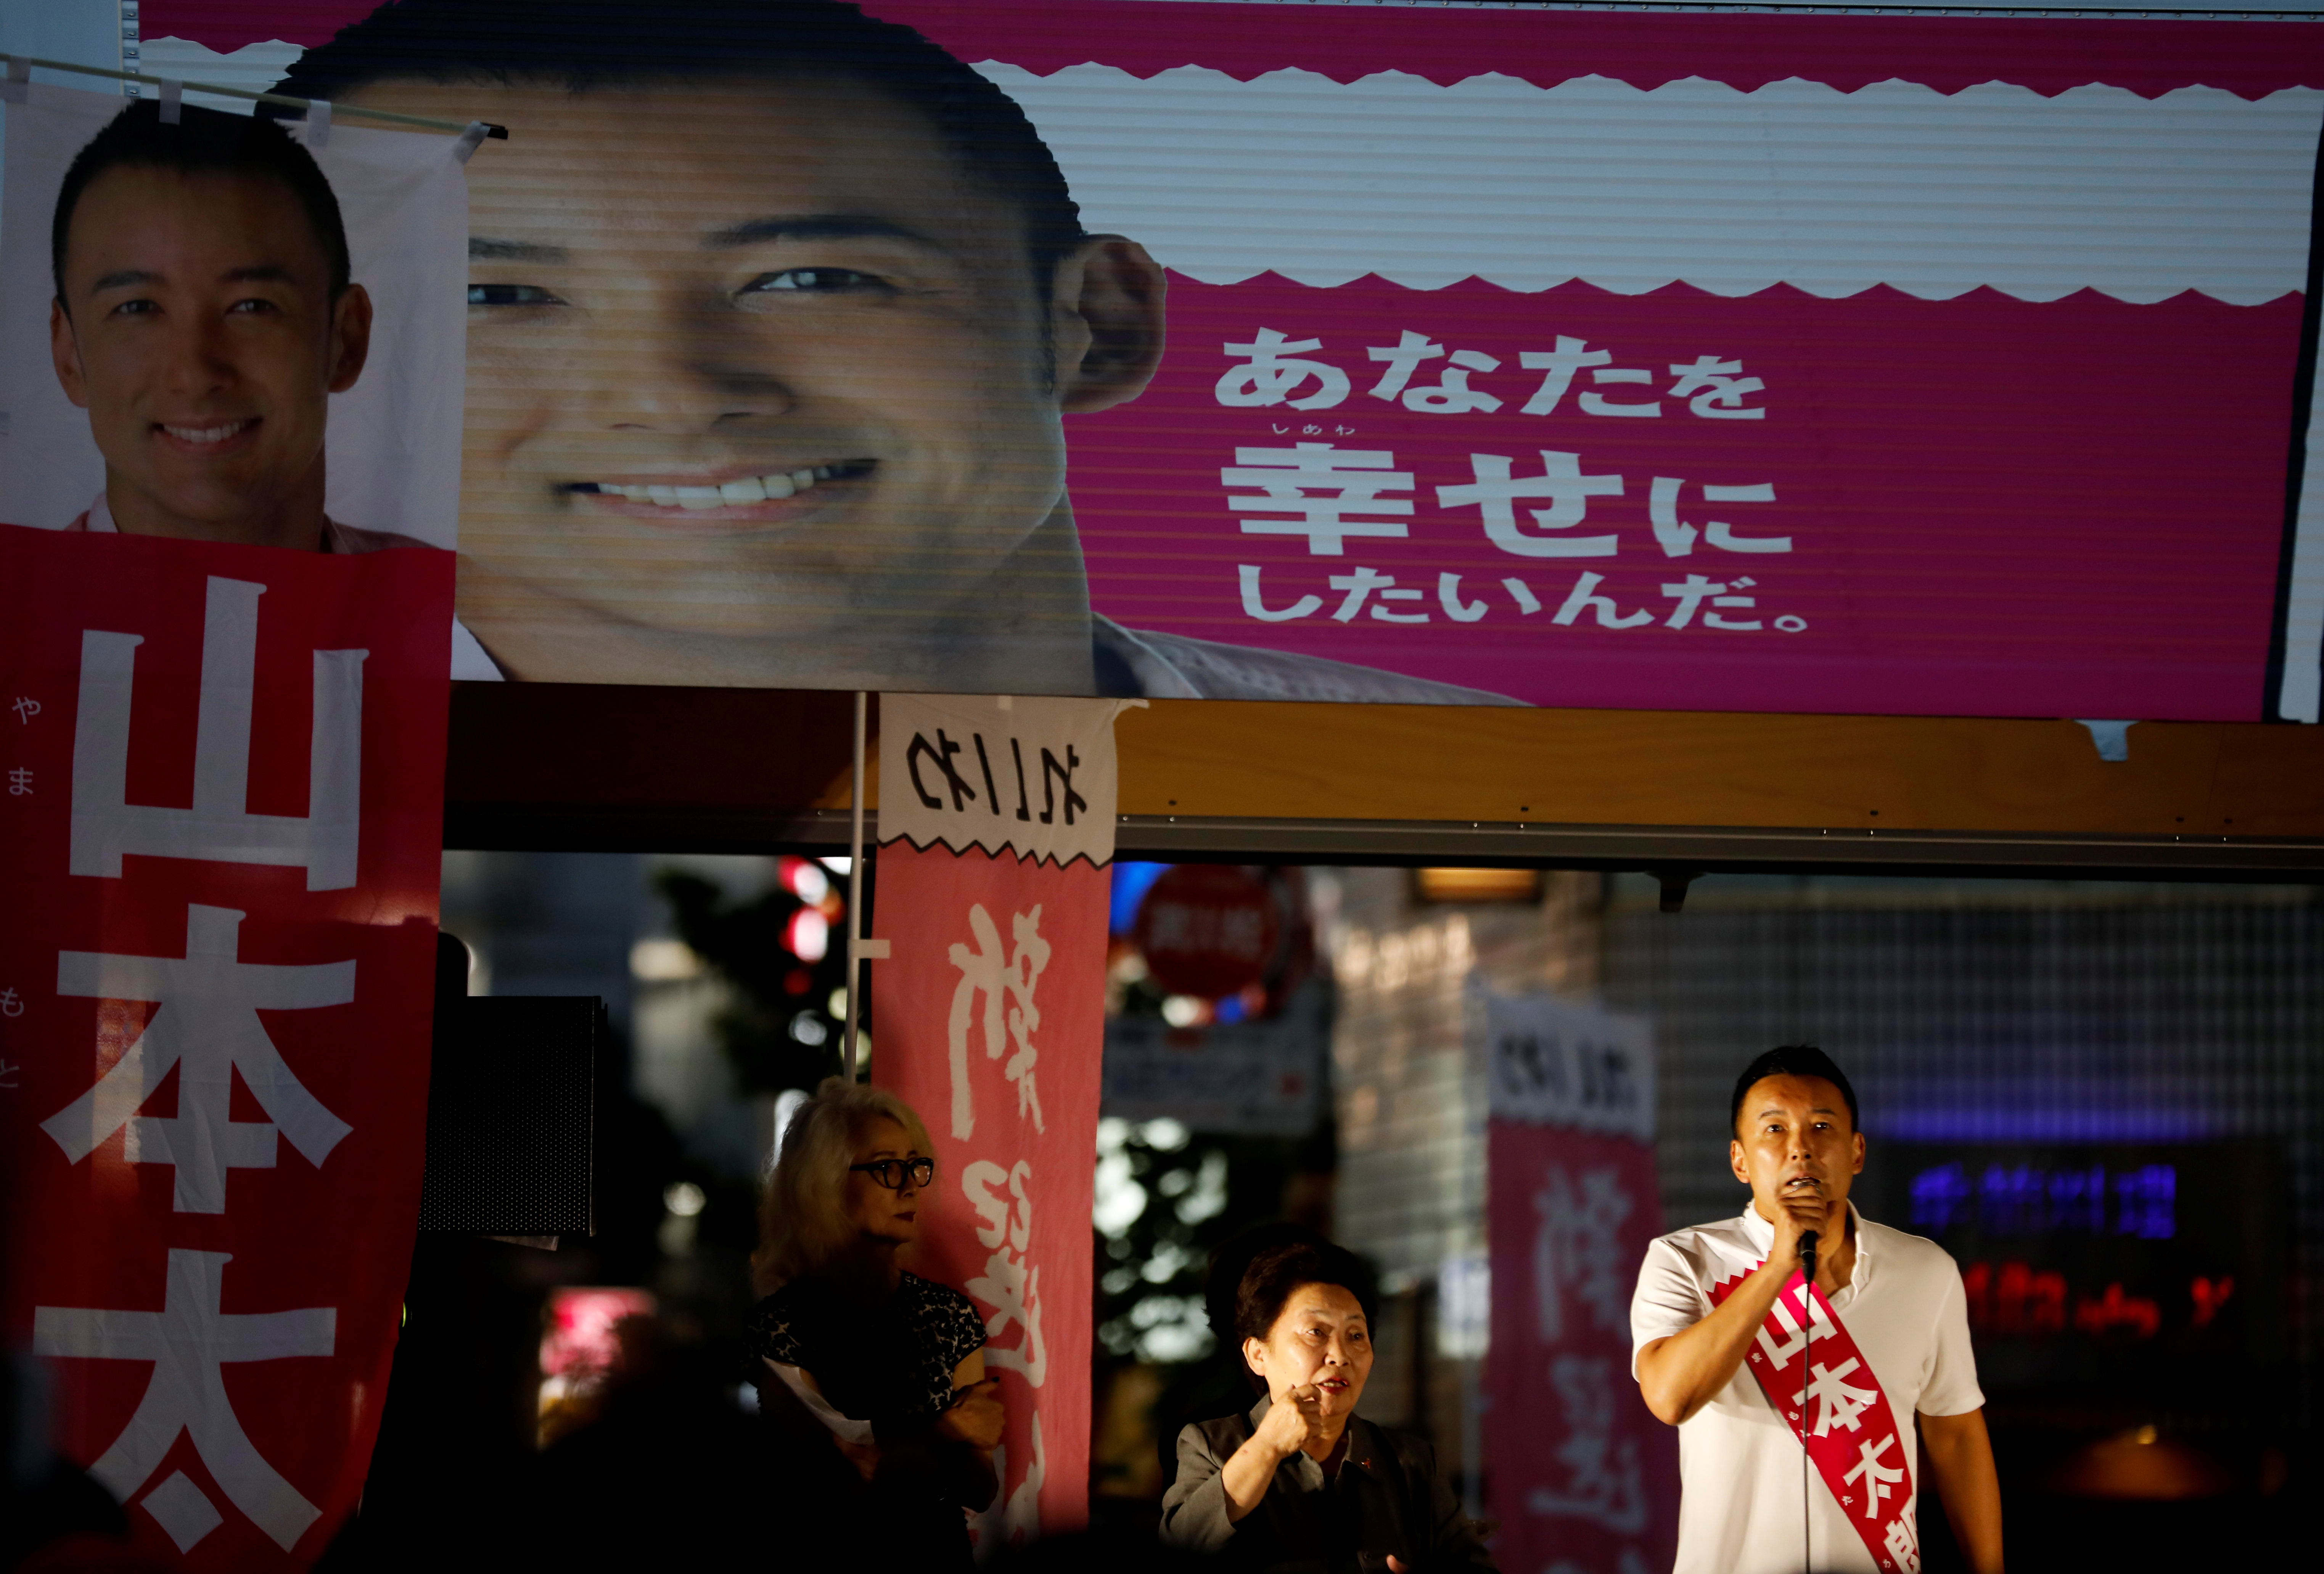 Japan actor-turned politician aims for real-life starring role